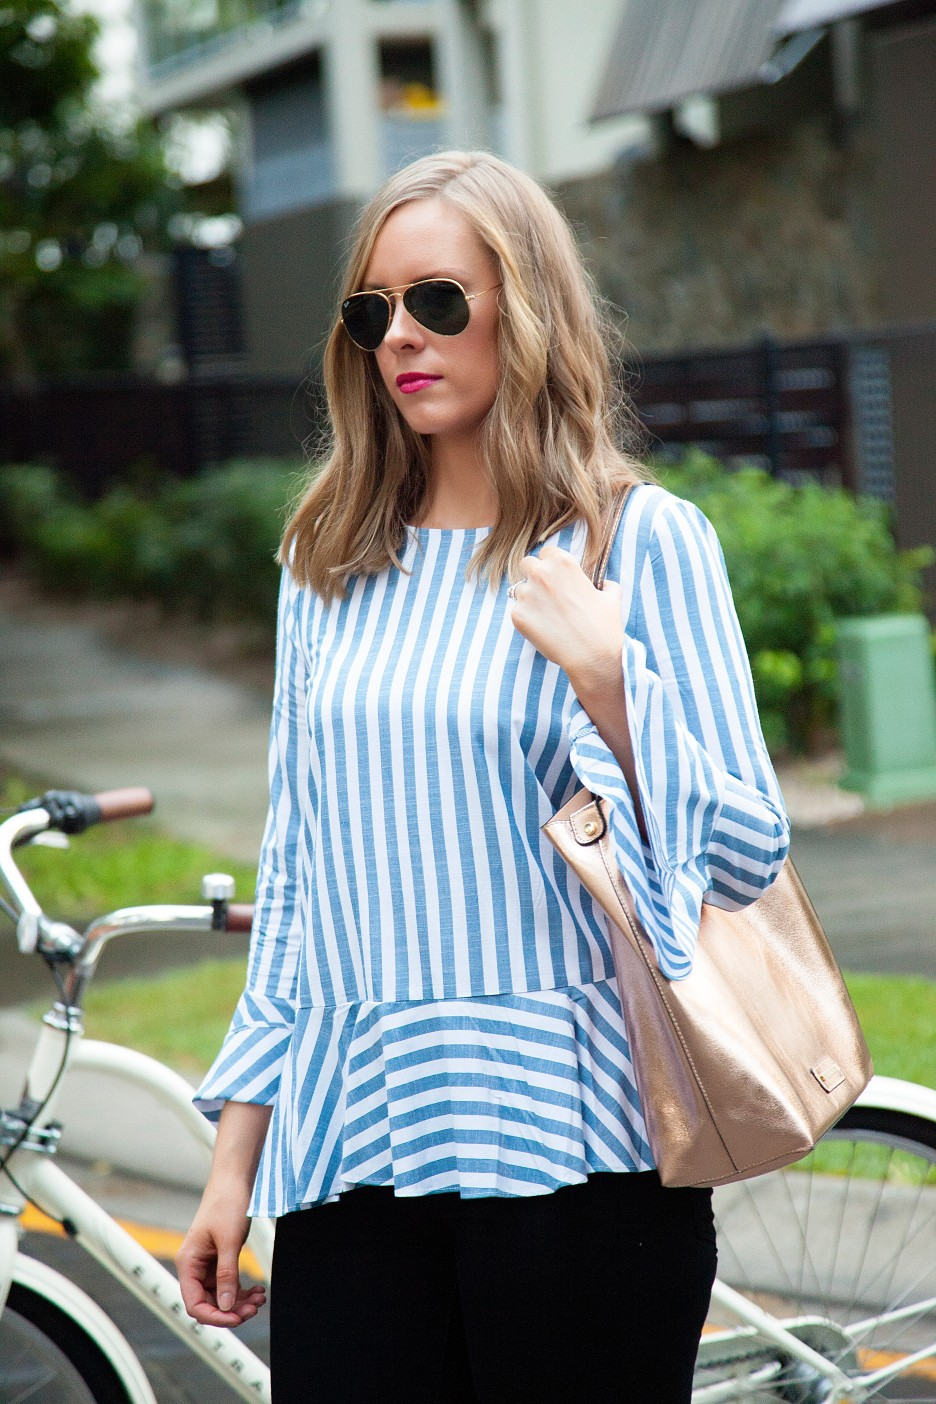 3 Stripe Top Black Jeans and White Converse Sneakers fashion blogger electra bike with basket rose gold tote handbag | One Striped Outfit, Two Ways featured by popular US fashion blogger, Style Elixir